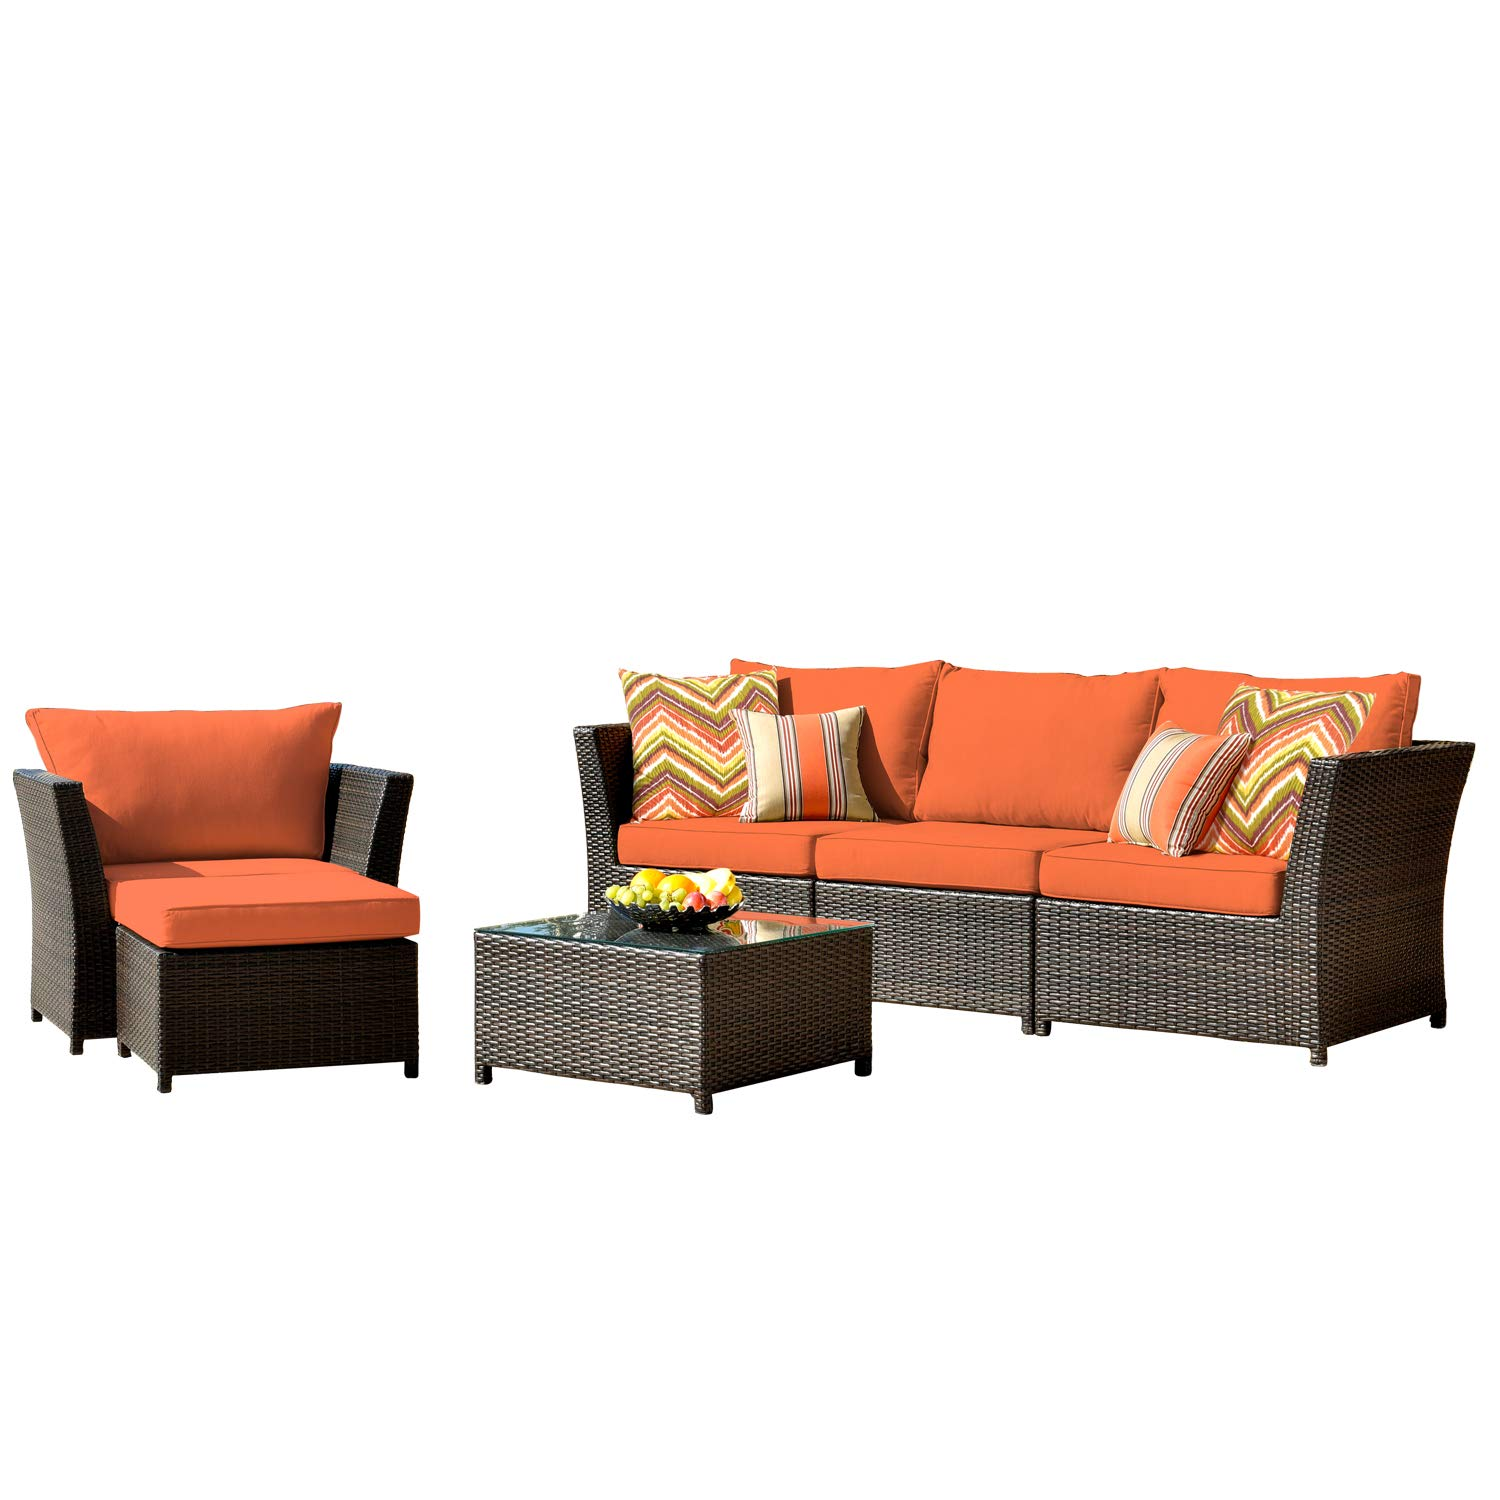 ovios Patio Furniture Set, Backyard Sofa Outdoor Furniture 6 Pcs Sets,PE Rattan Wicker sectional with 2 Pillows and Coffee Table, No Assembly Required,Brown (6 Piece, Orange red)